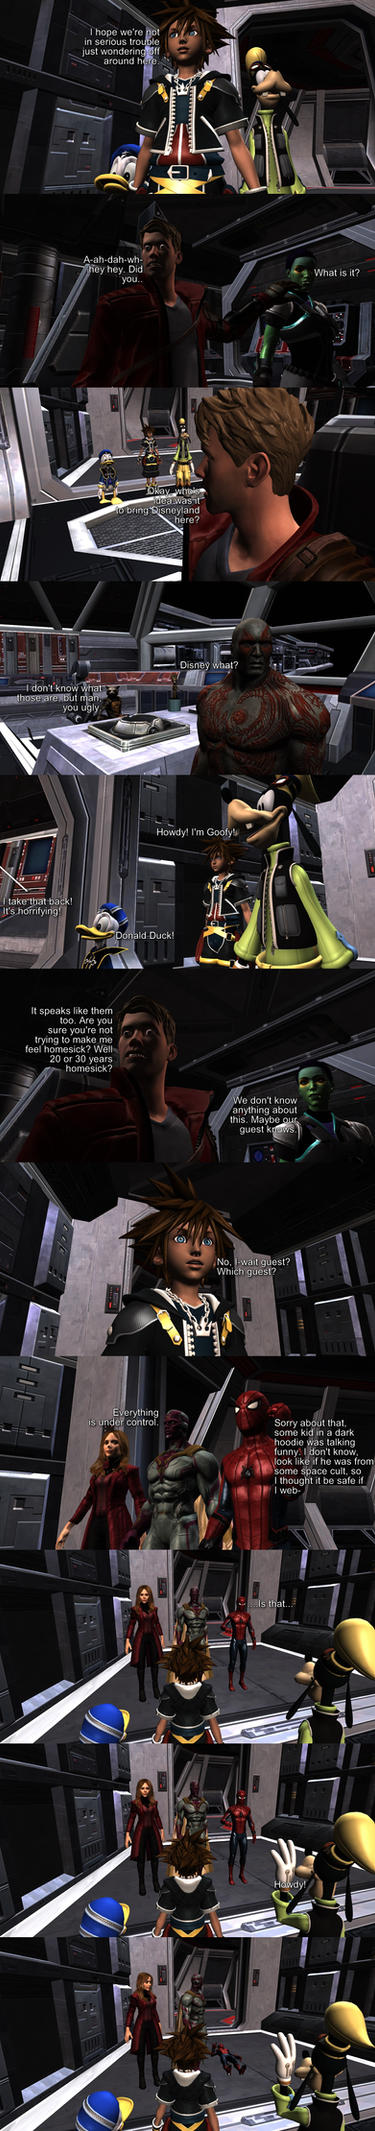 Request #2242 What if KH meets GotG by MichaelJordy